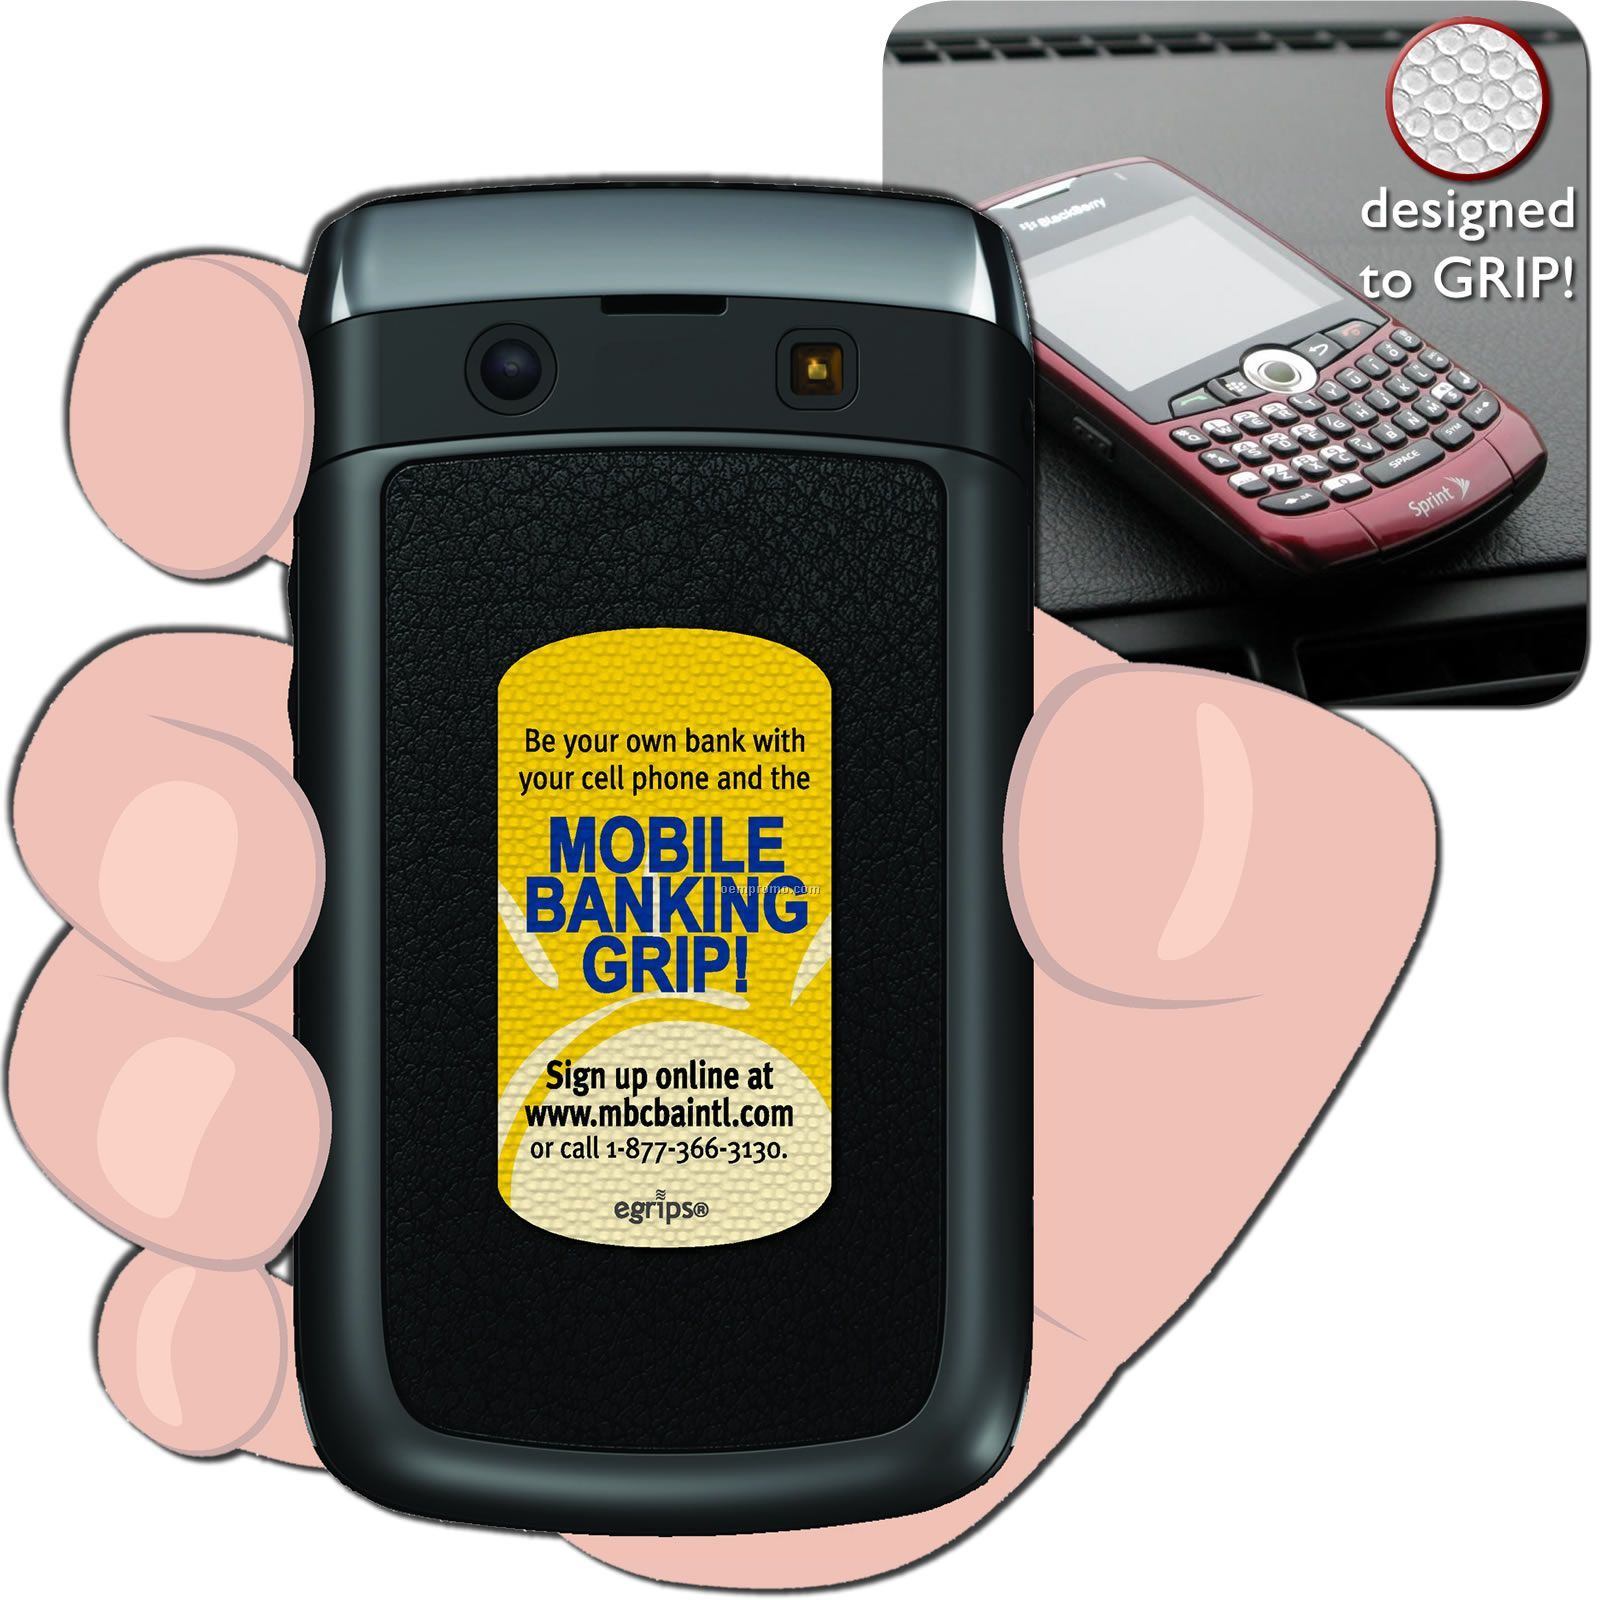 Most advanced cell phone in the world